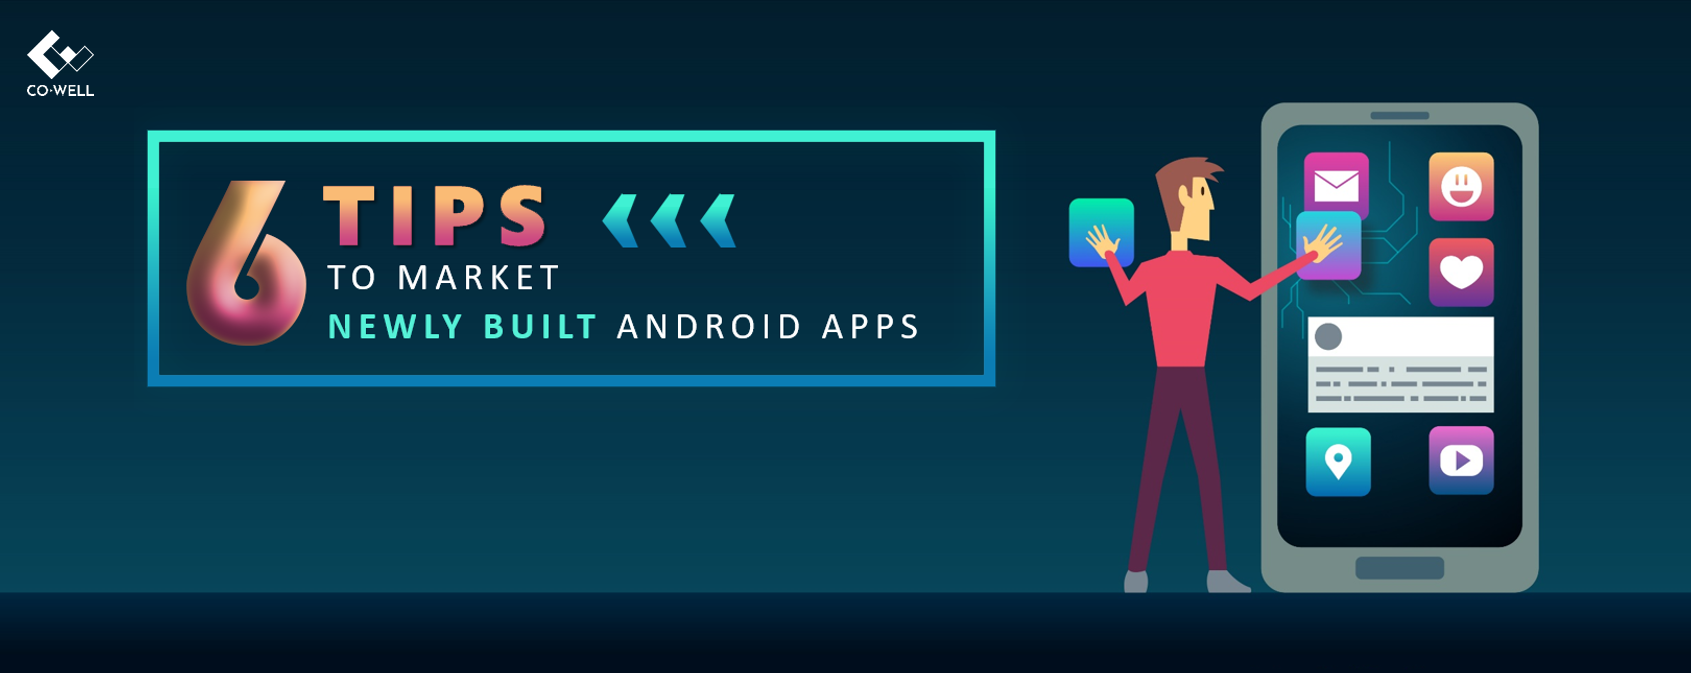 tips to market android app